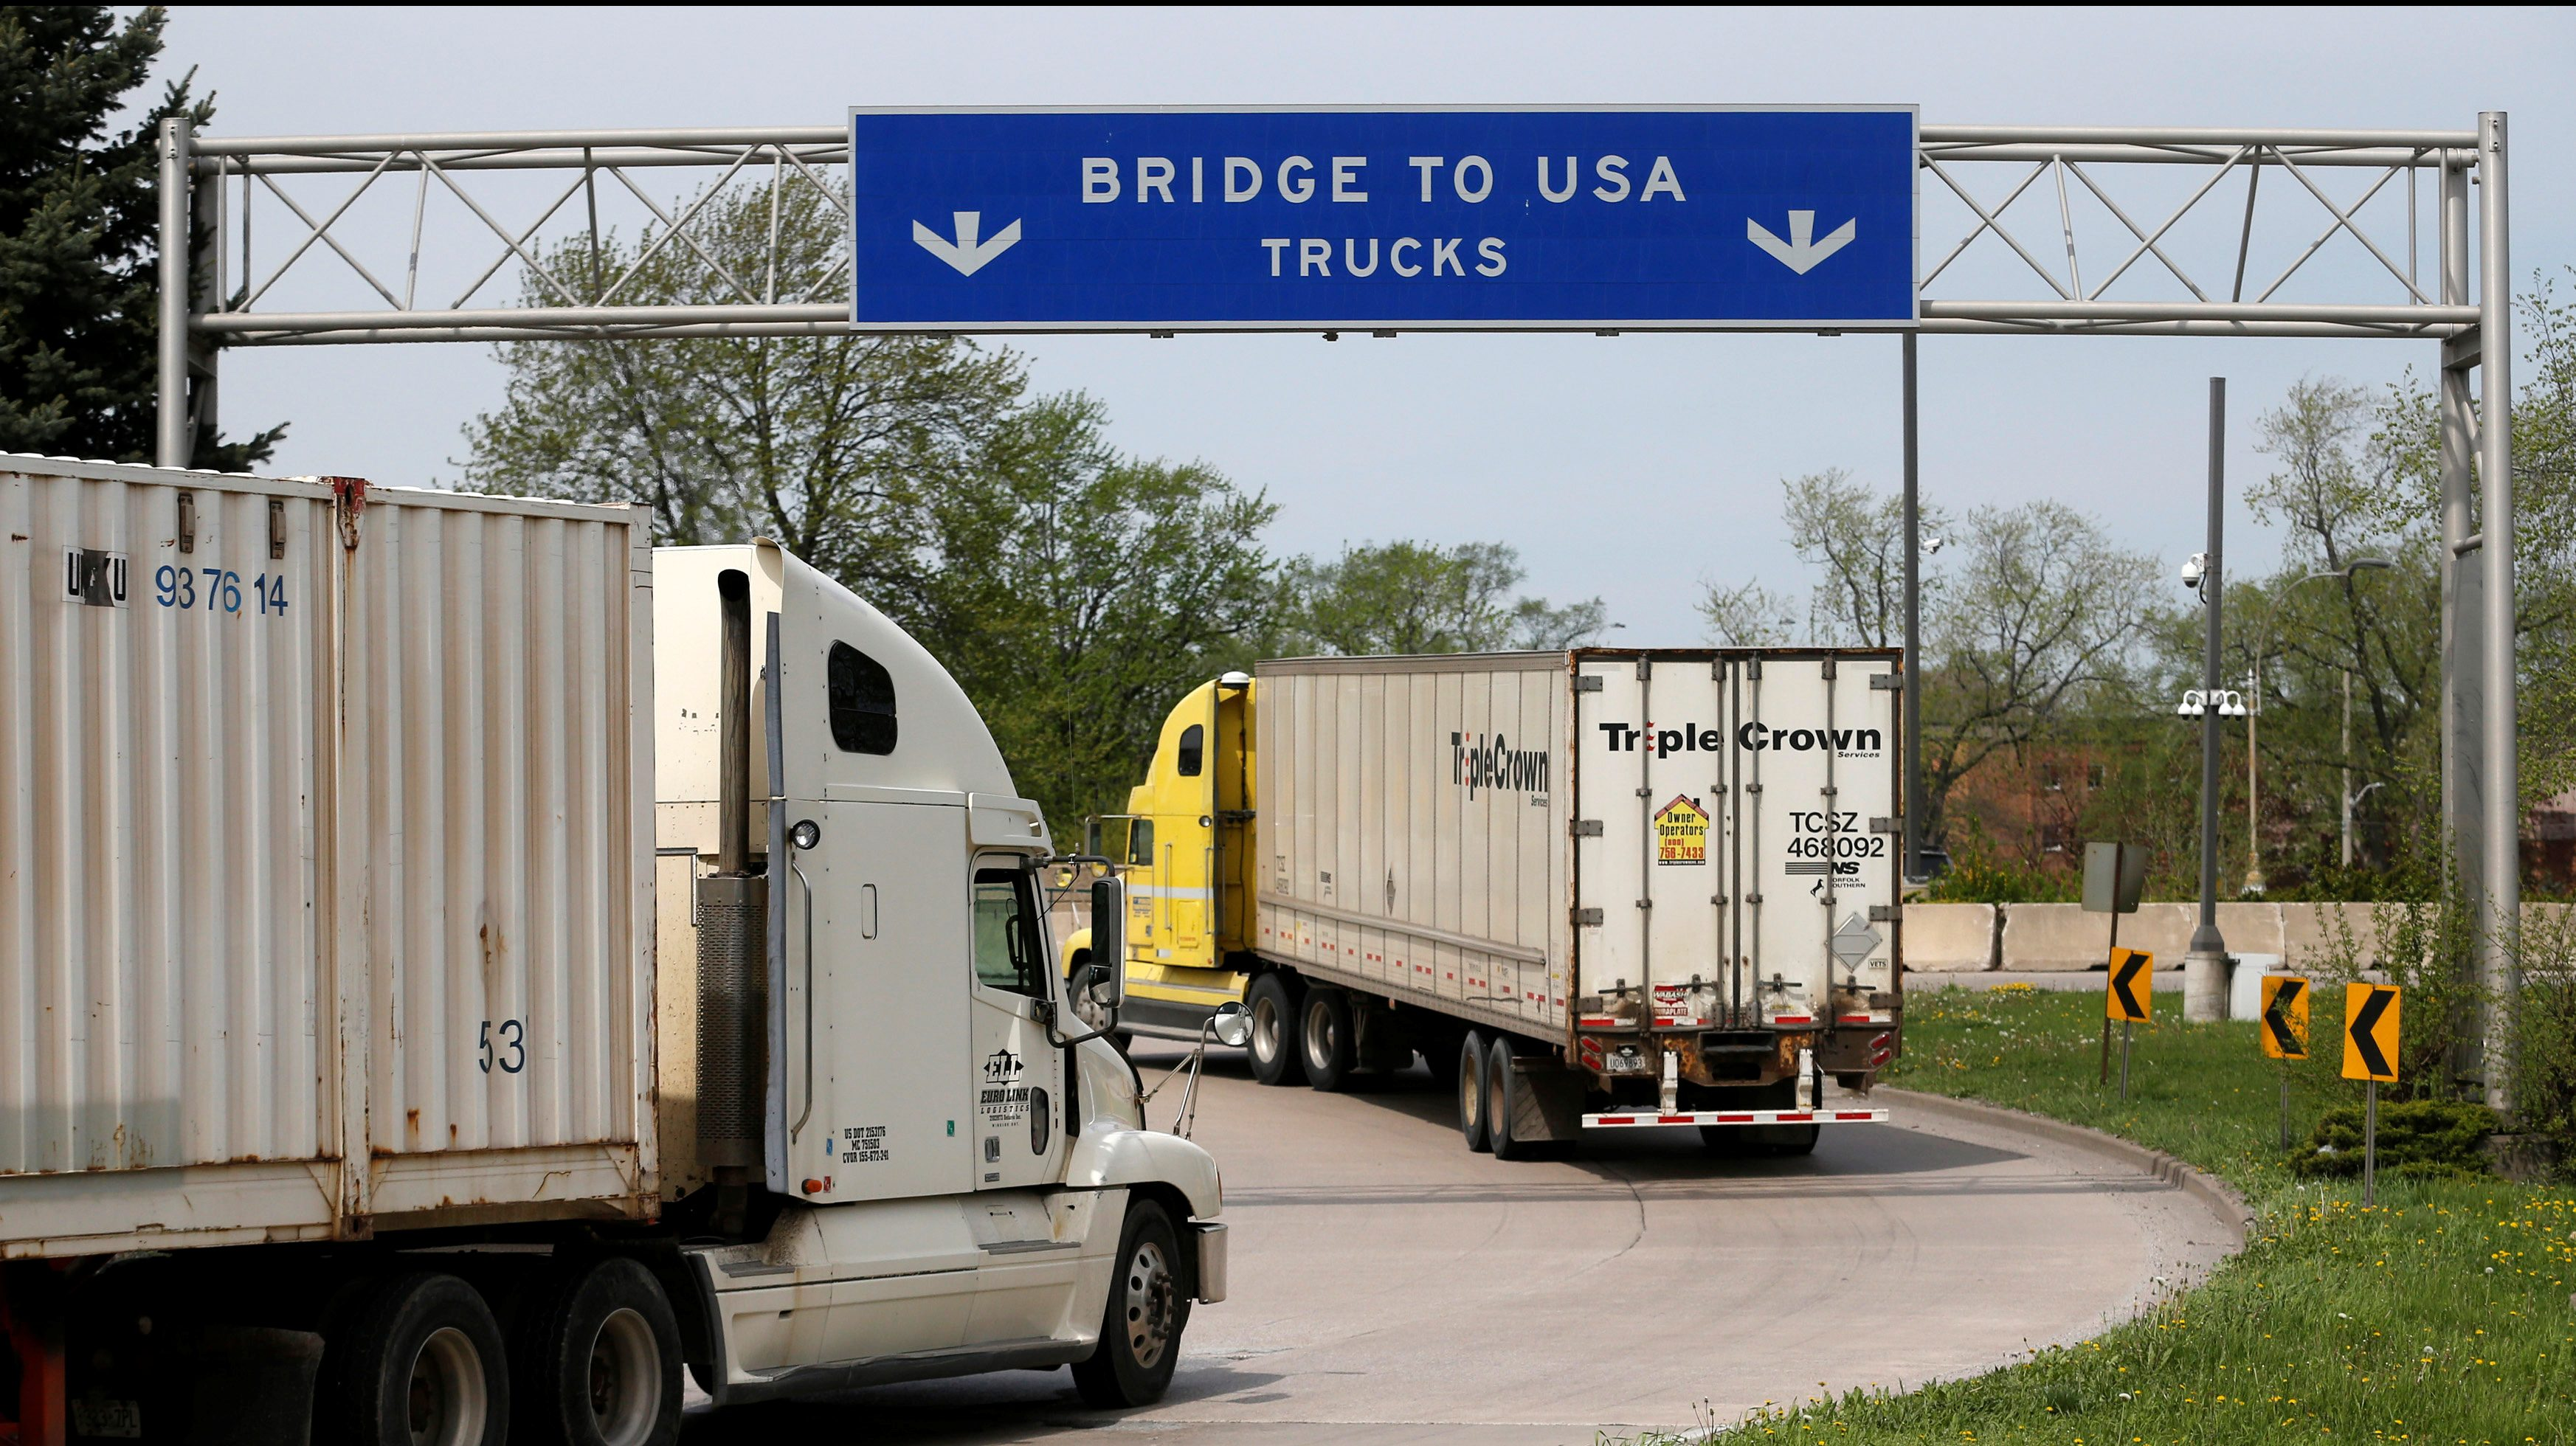 Semi trucks heading for the US from Canada